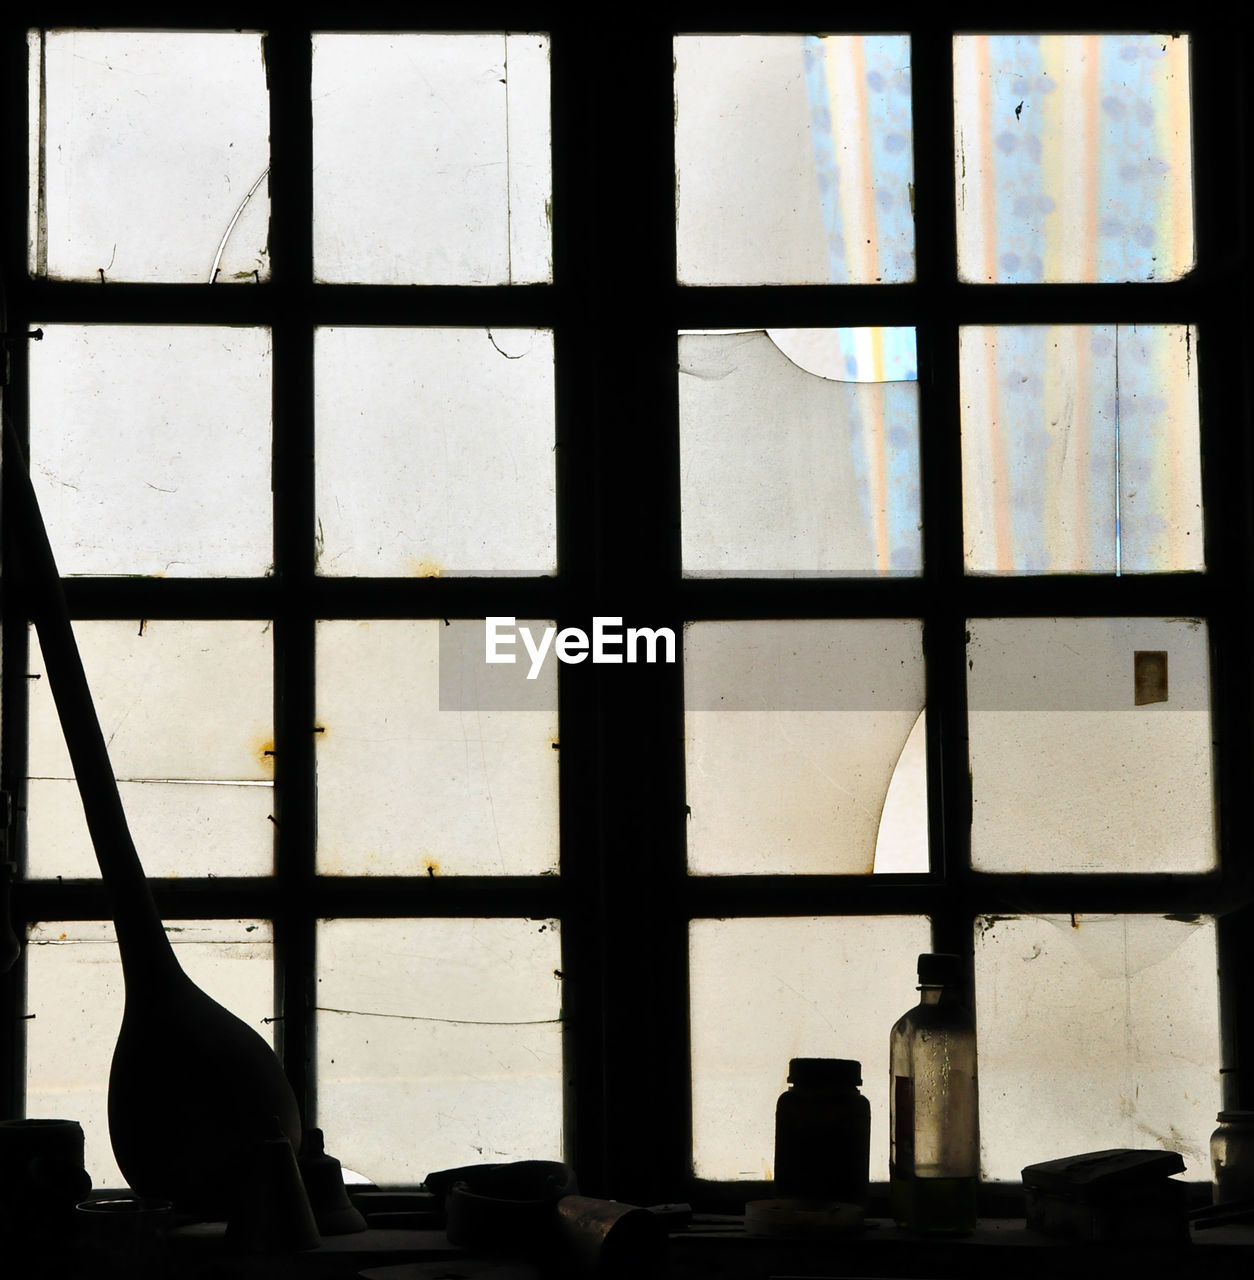 window, architecture, built structure, indoors, no people, pattern, day, building, full frame, sunlight, metal, glass - material, backgrounds, close-up, nature, silhouette, design, wall - building feature